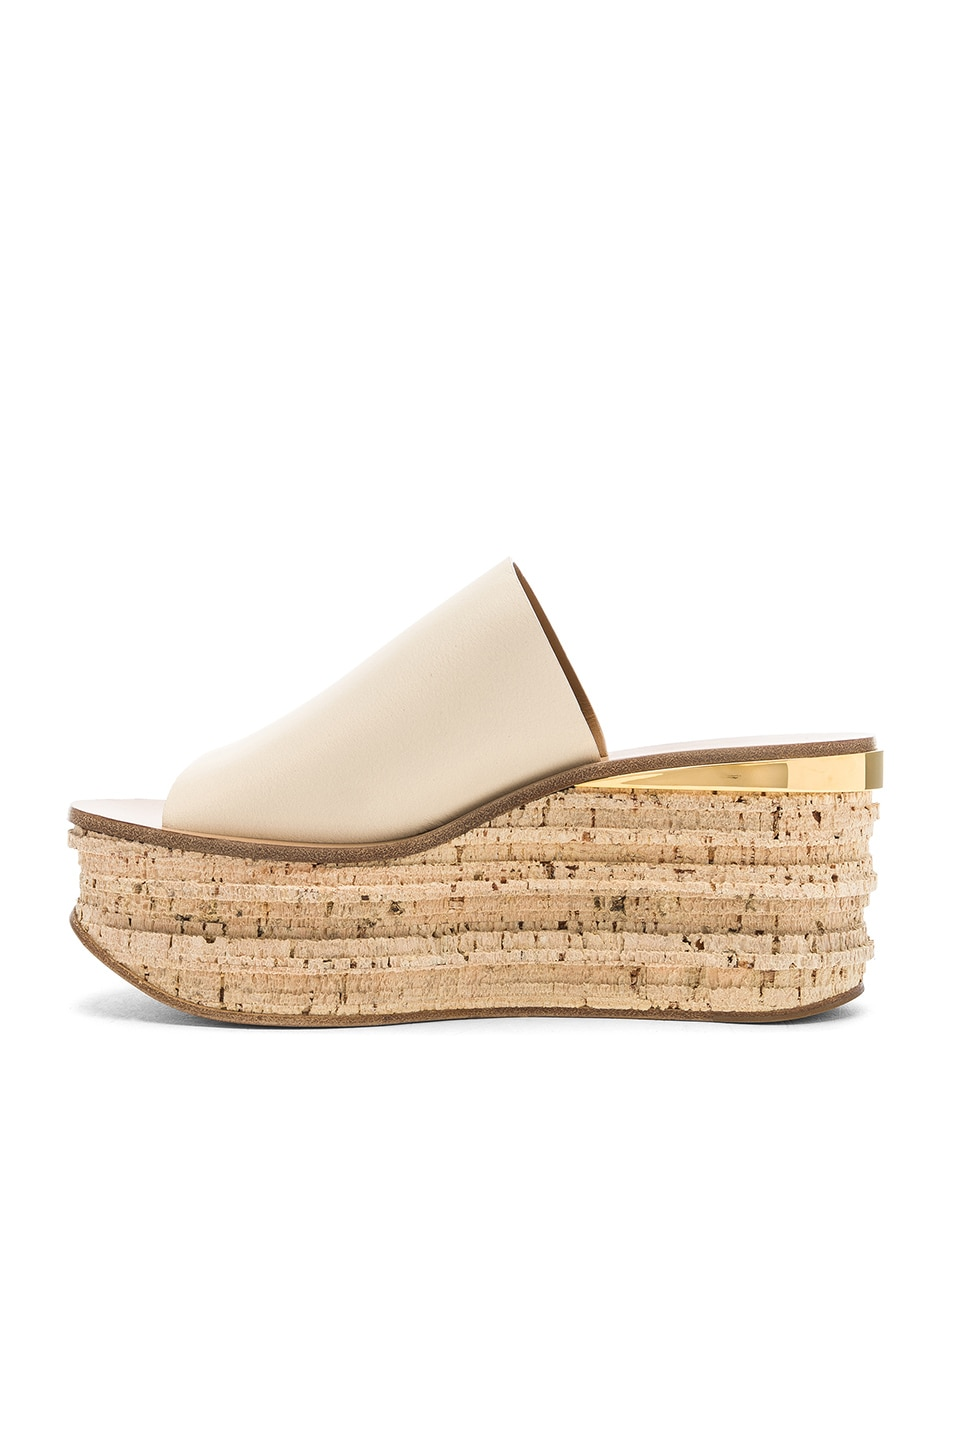 Image 5 of Chloe Platform Sandals in Mild Beige